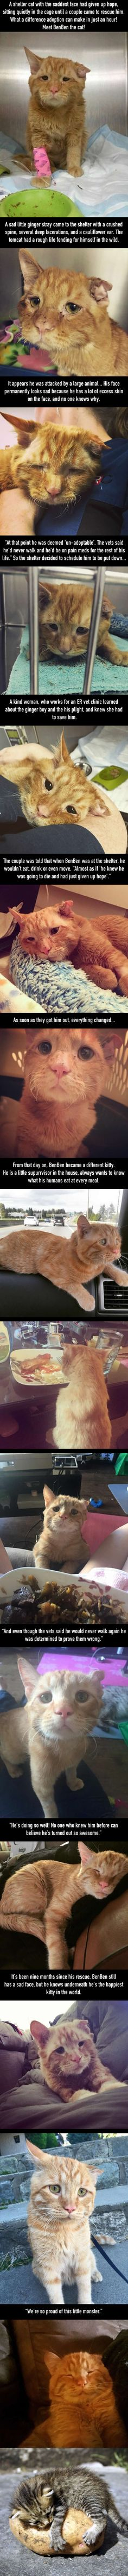 Couple Takes a Chance on Sad Shelter Cat Ben Ben Who Couldn't Find Home, an Hour After Adoption..